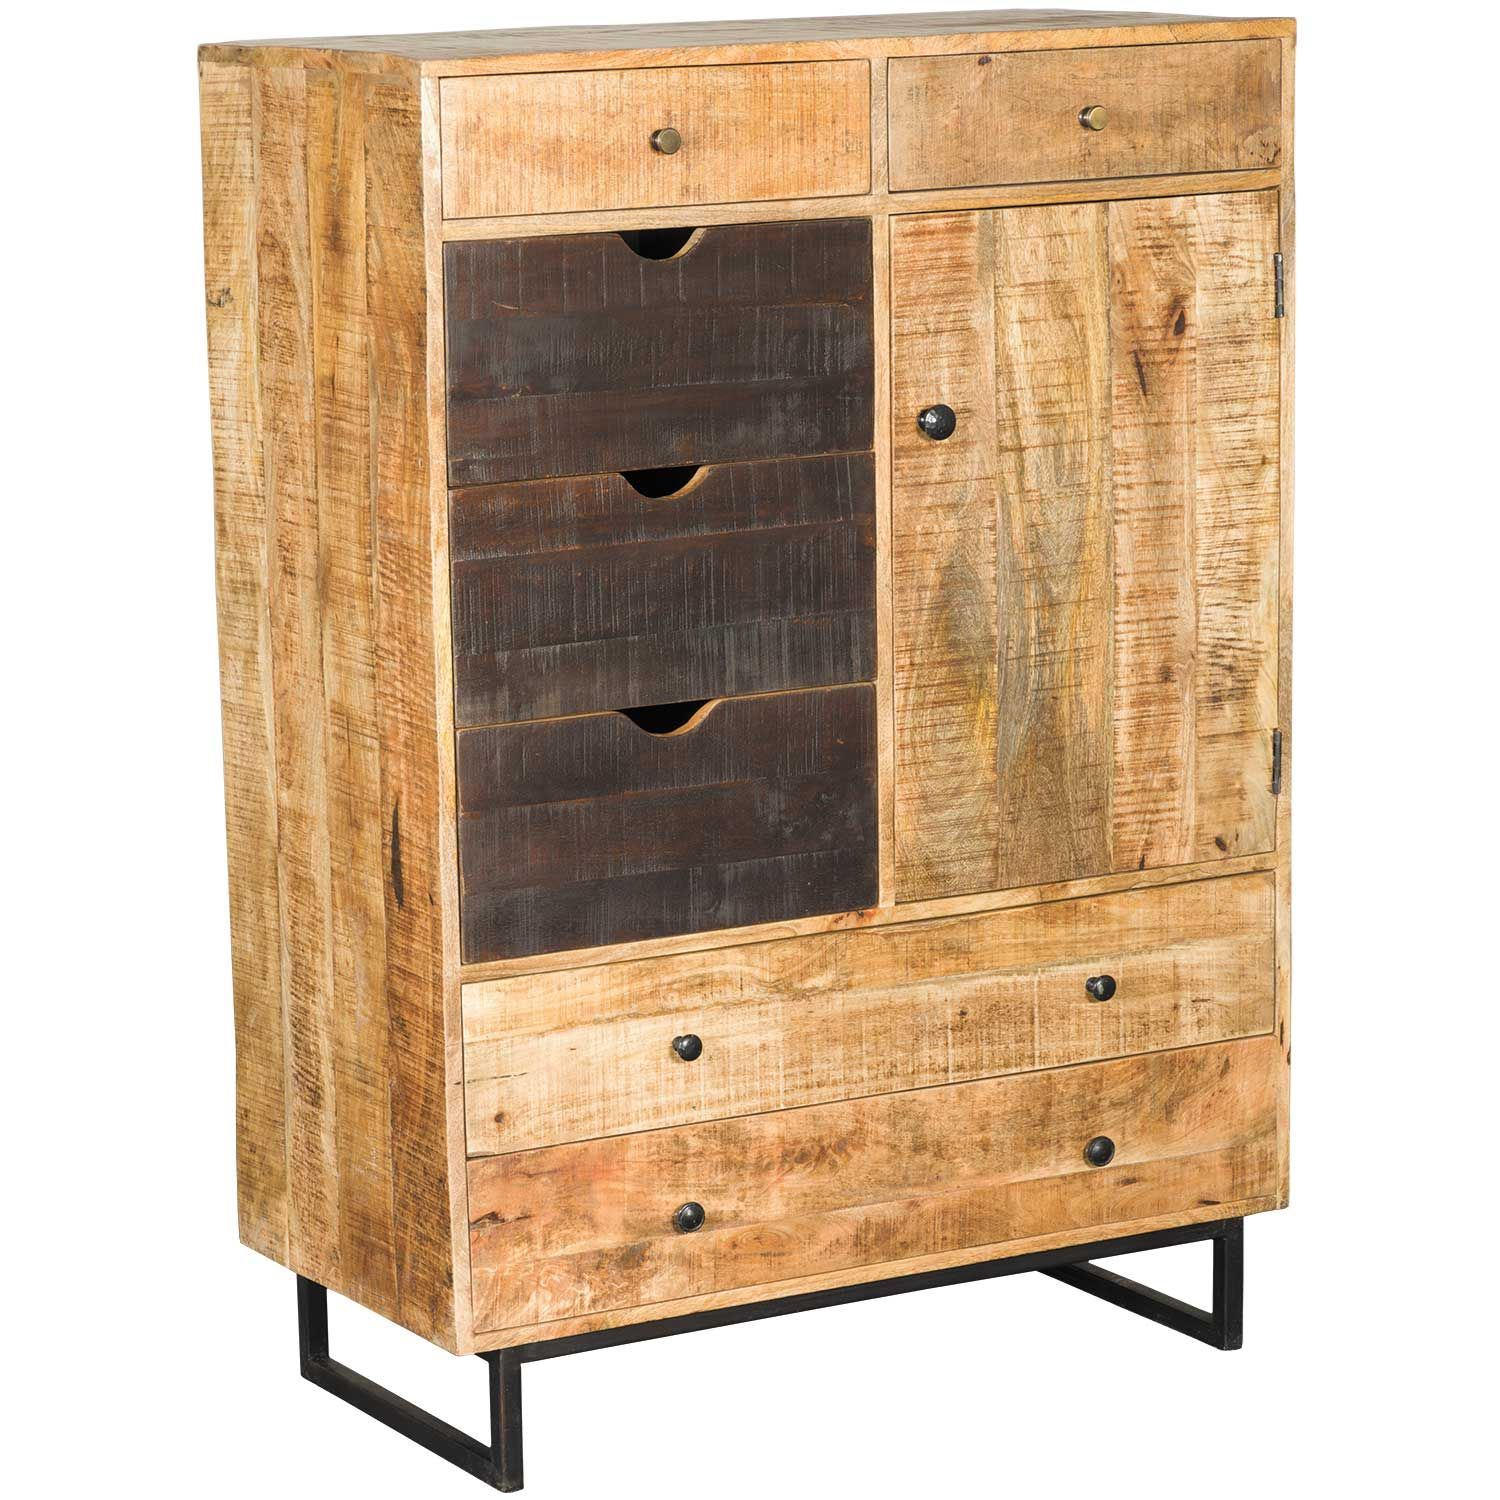 Vintage Door Chests And Dressers At American Furniture Warehouse